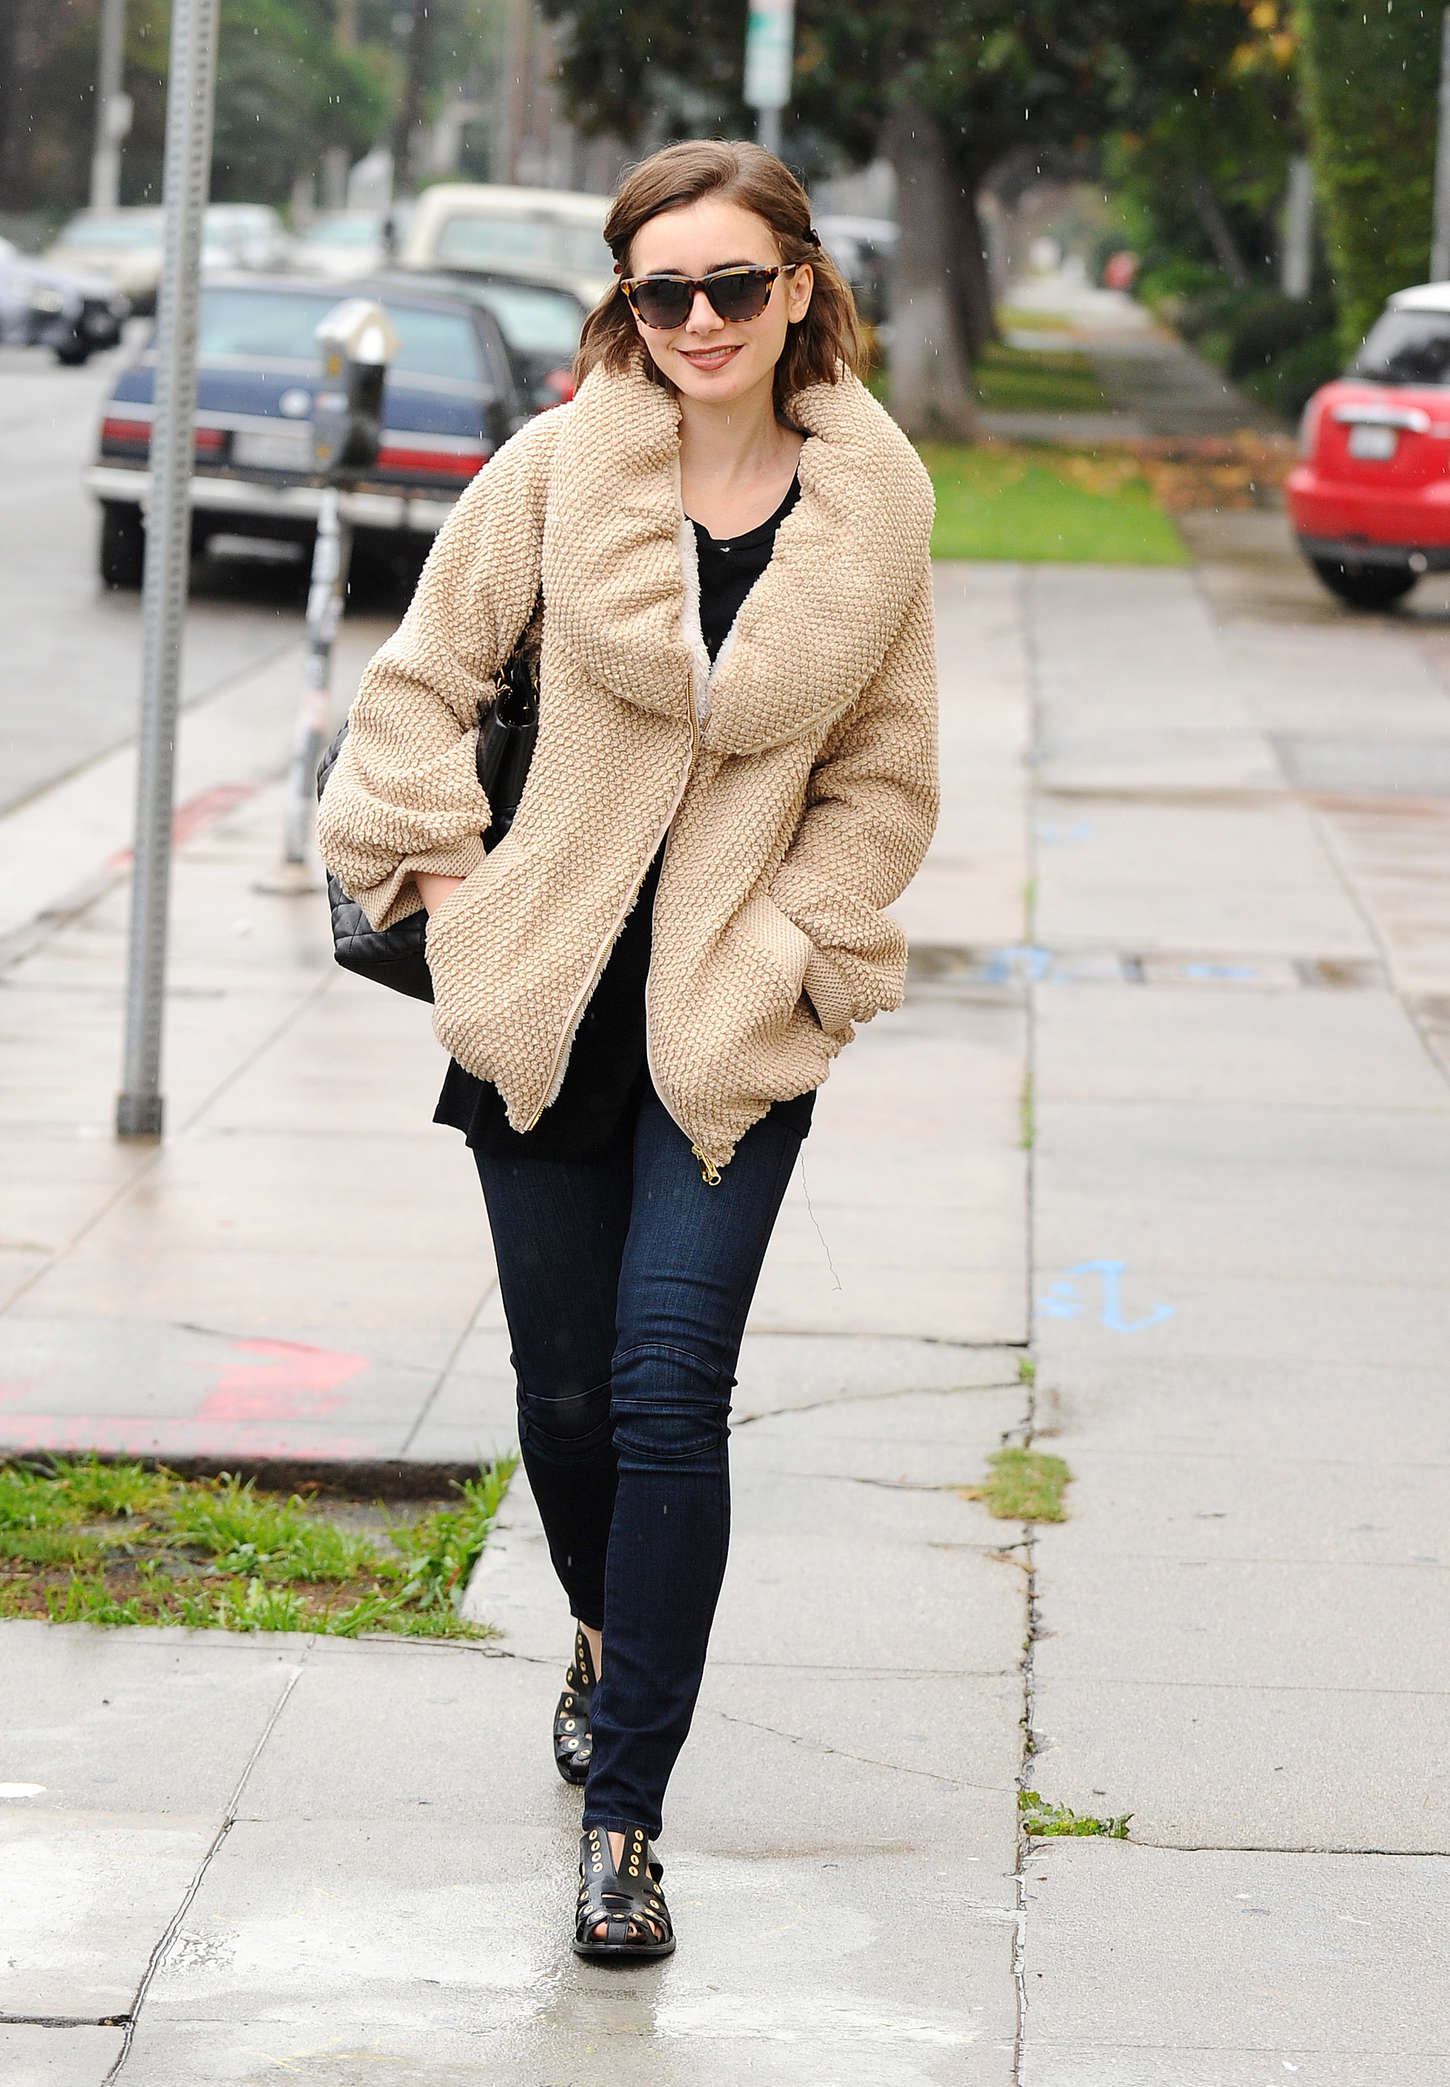 Lily collins street style out in la new images